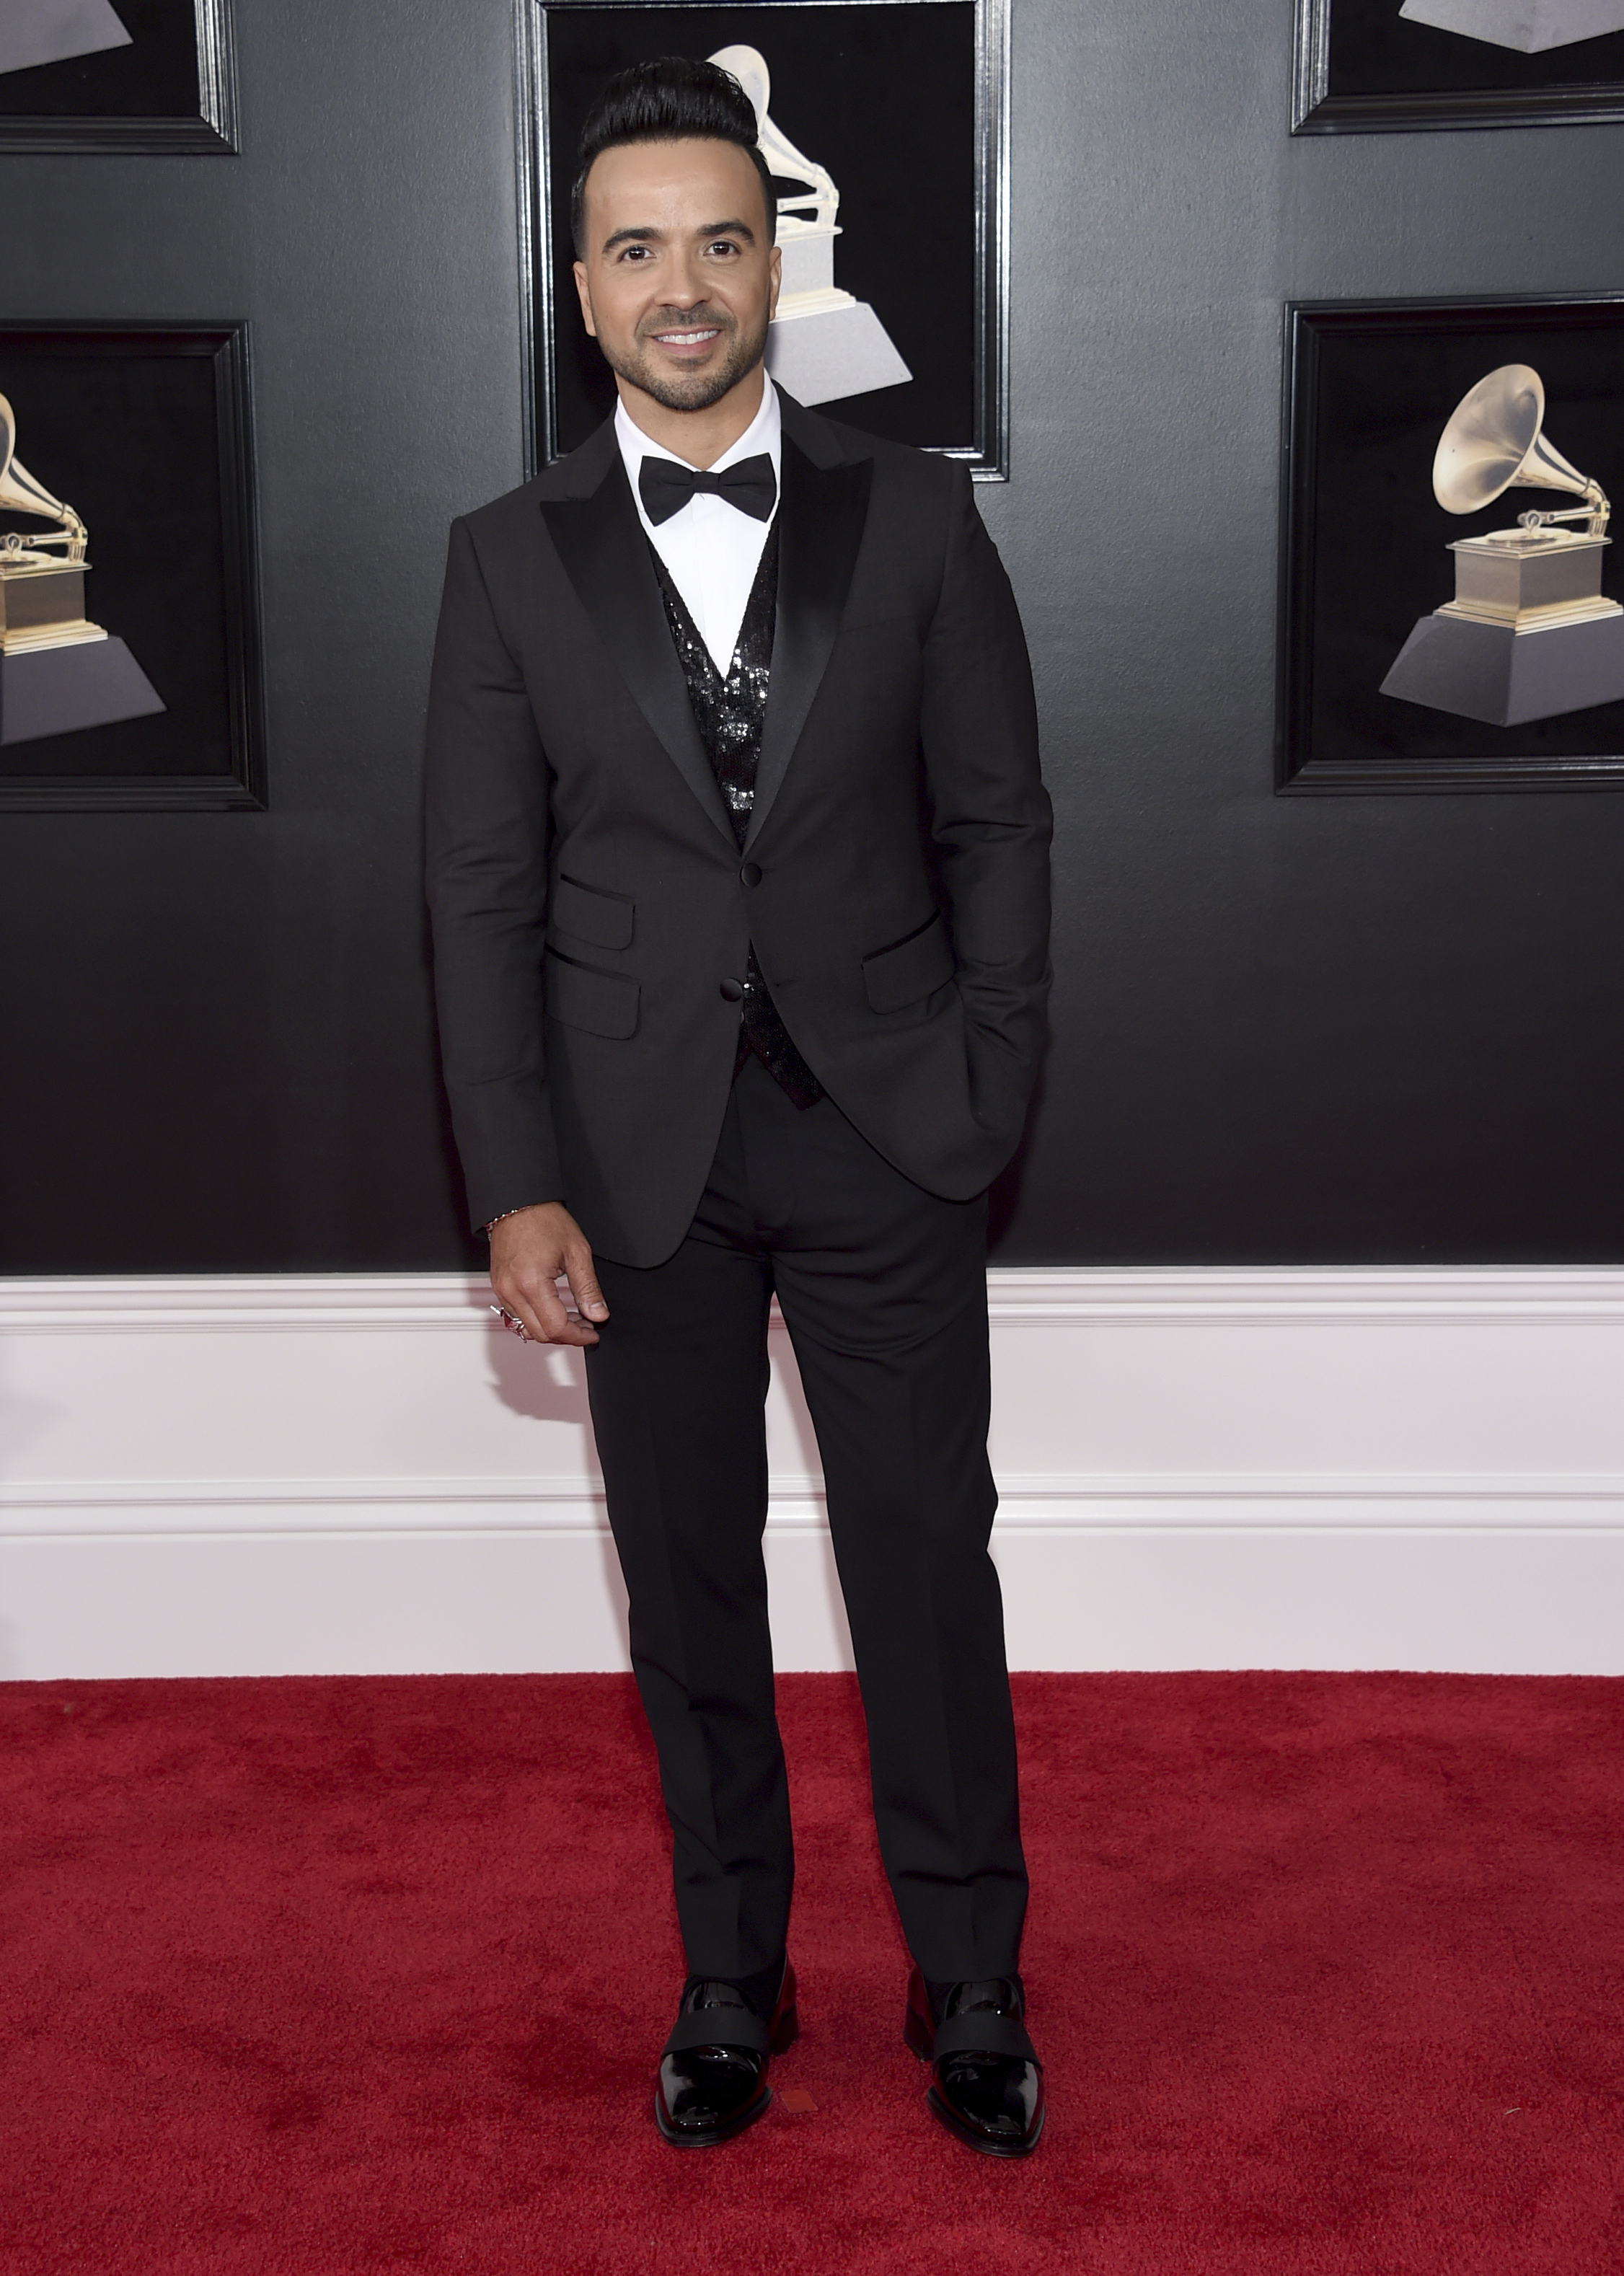 <div class='meta'><div class='origin-logo' data-origin='AP'></div><span class='caption-text' data-credit='Evan Agostini/Invision/AP'>Luis Fonsi arrives at the 60th annual Grammy Awards at Madison Square Garden on Sunday, Jan. 28, 2018, in New York.</span></div>